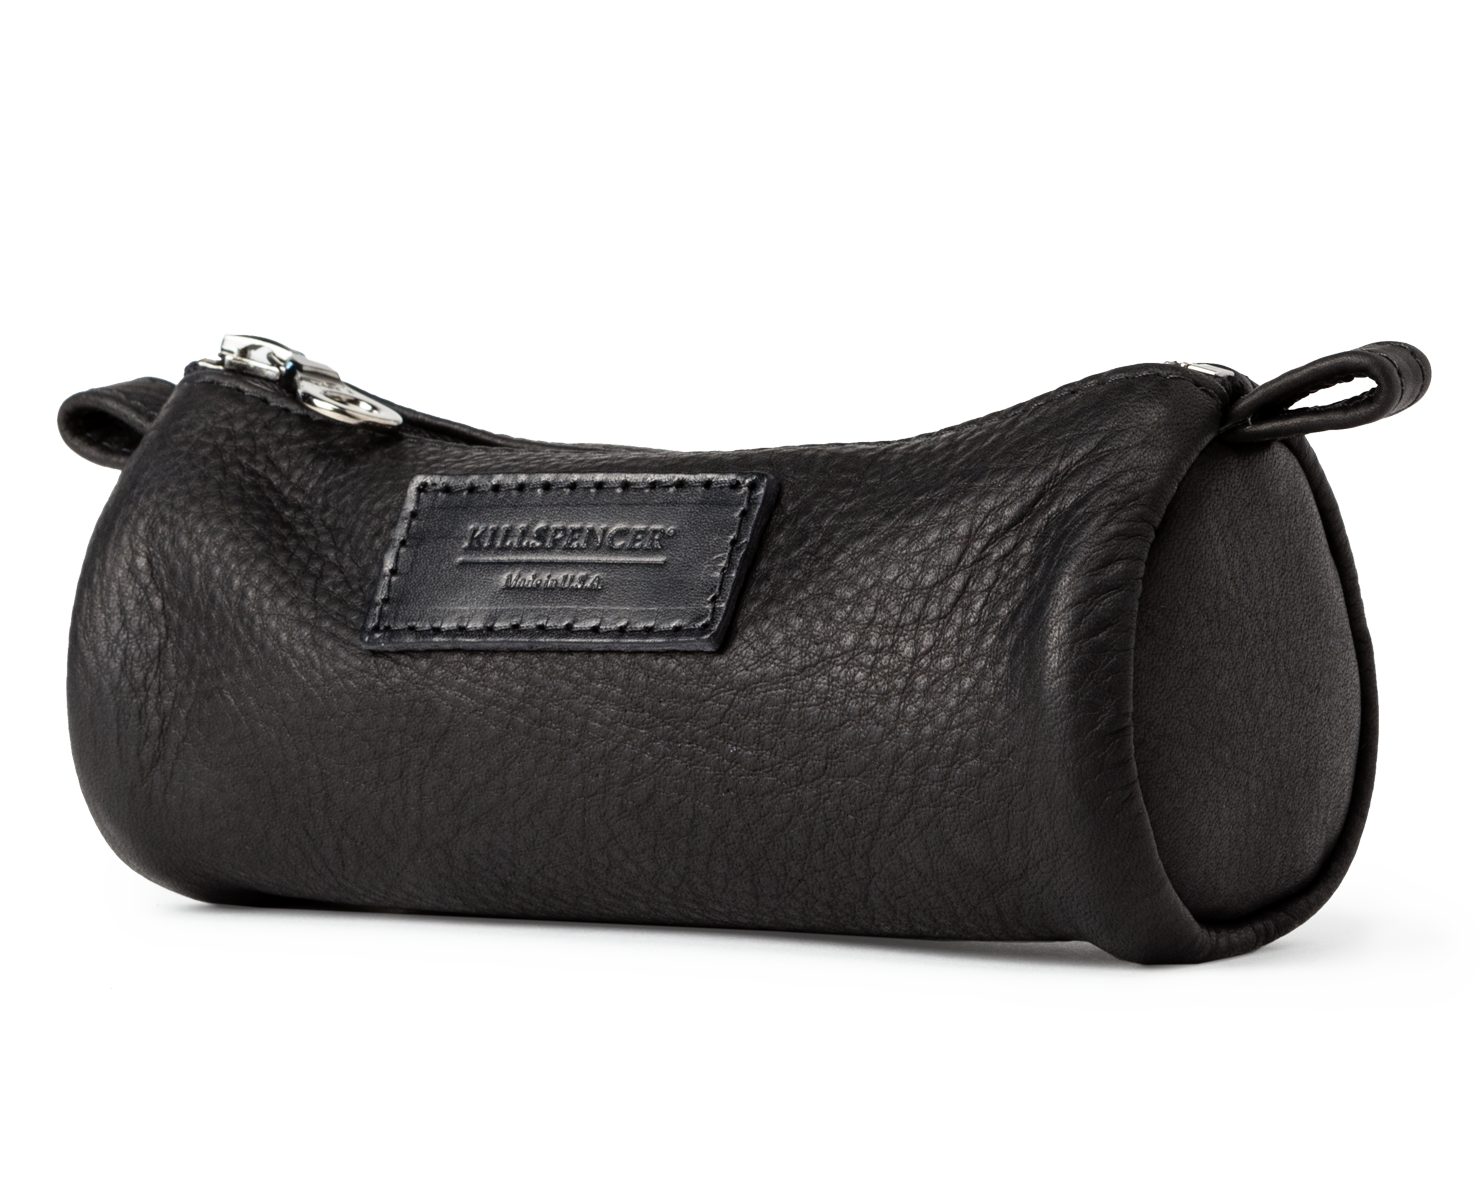 PENCIL CASE | KILLSPENCER® - Black Leather